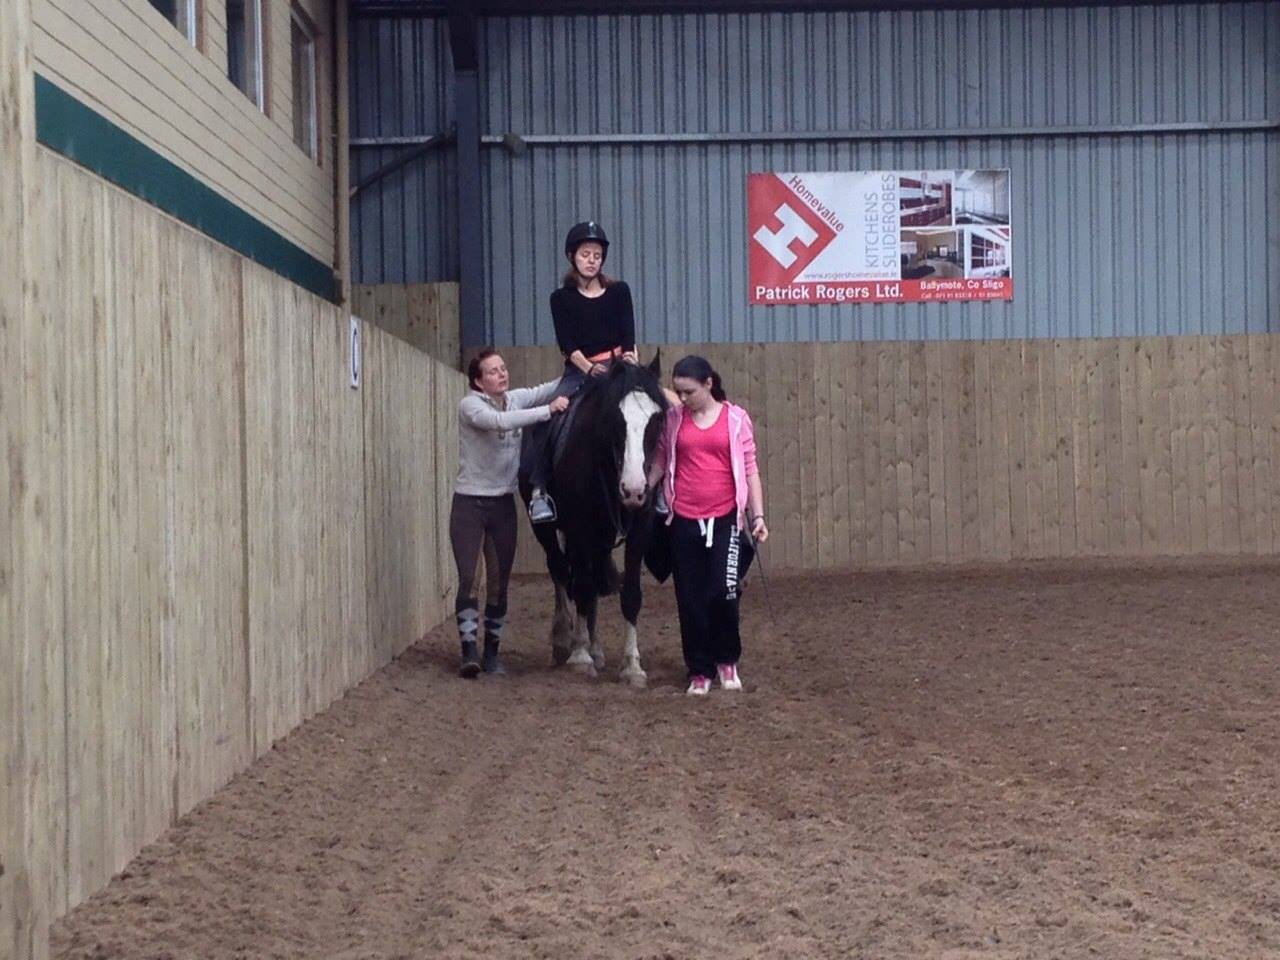 Assisted Horse riding